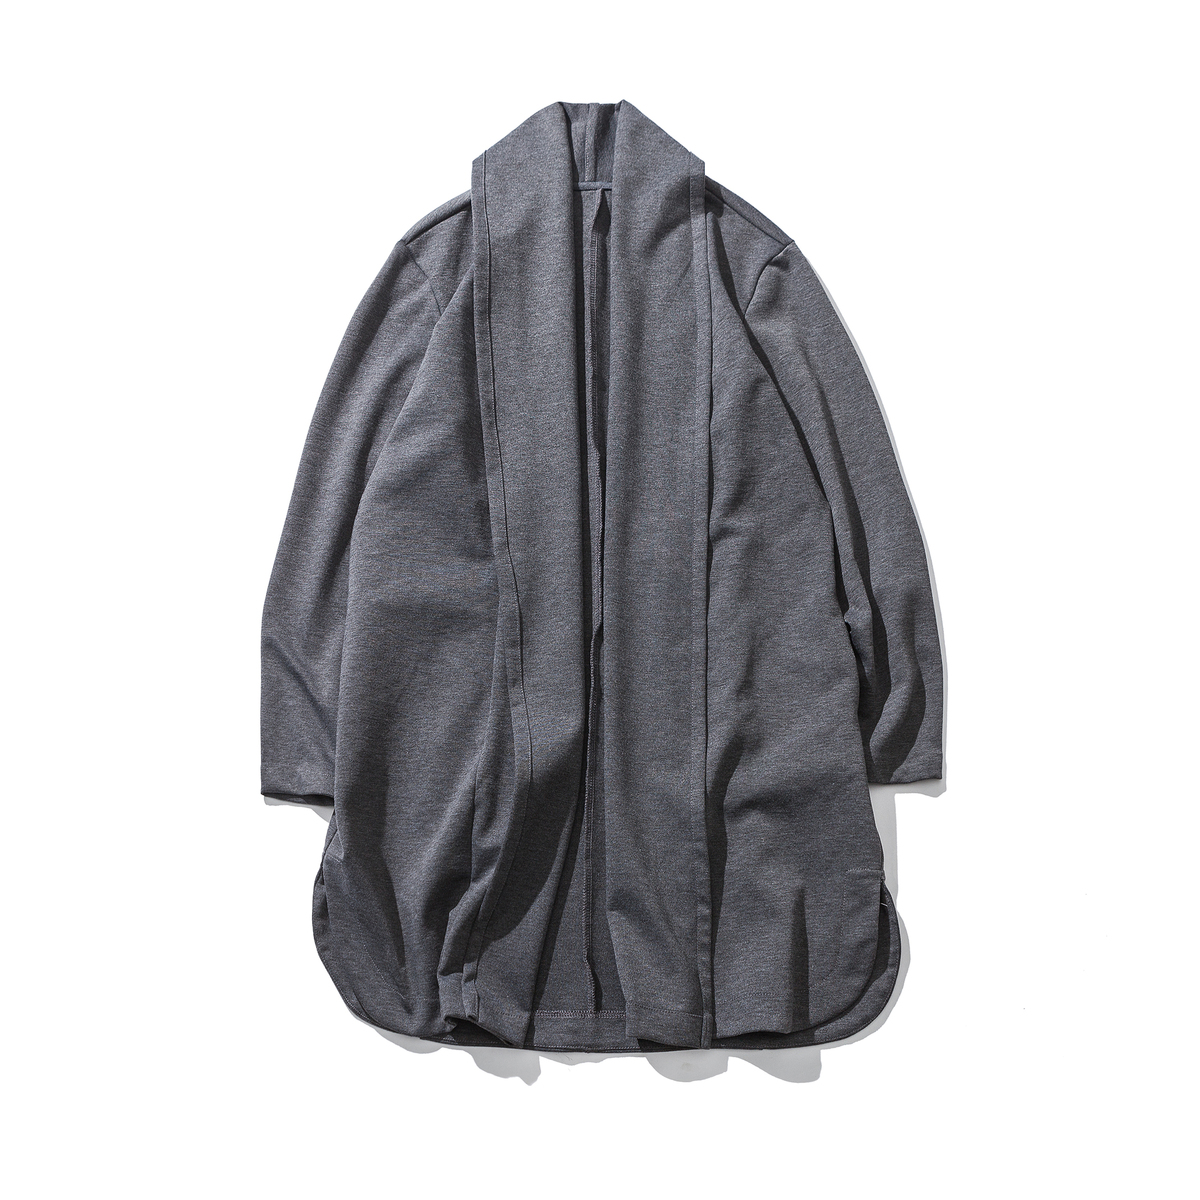 autumn the long of the men coat of the Chinese style of the large size of the loose hair stylist knitted cardigan cloak